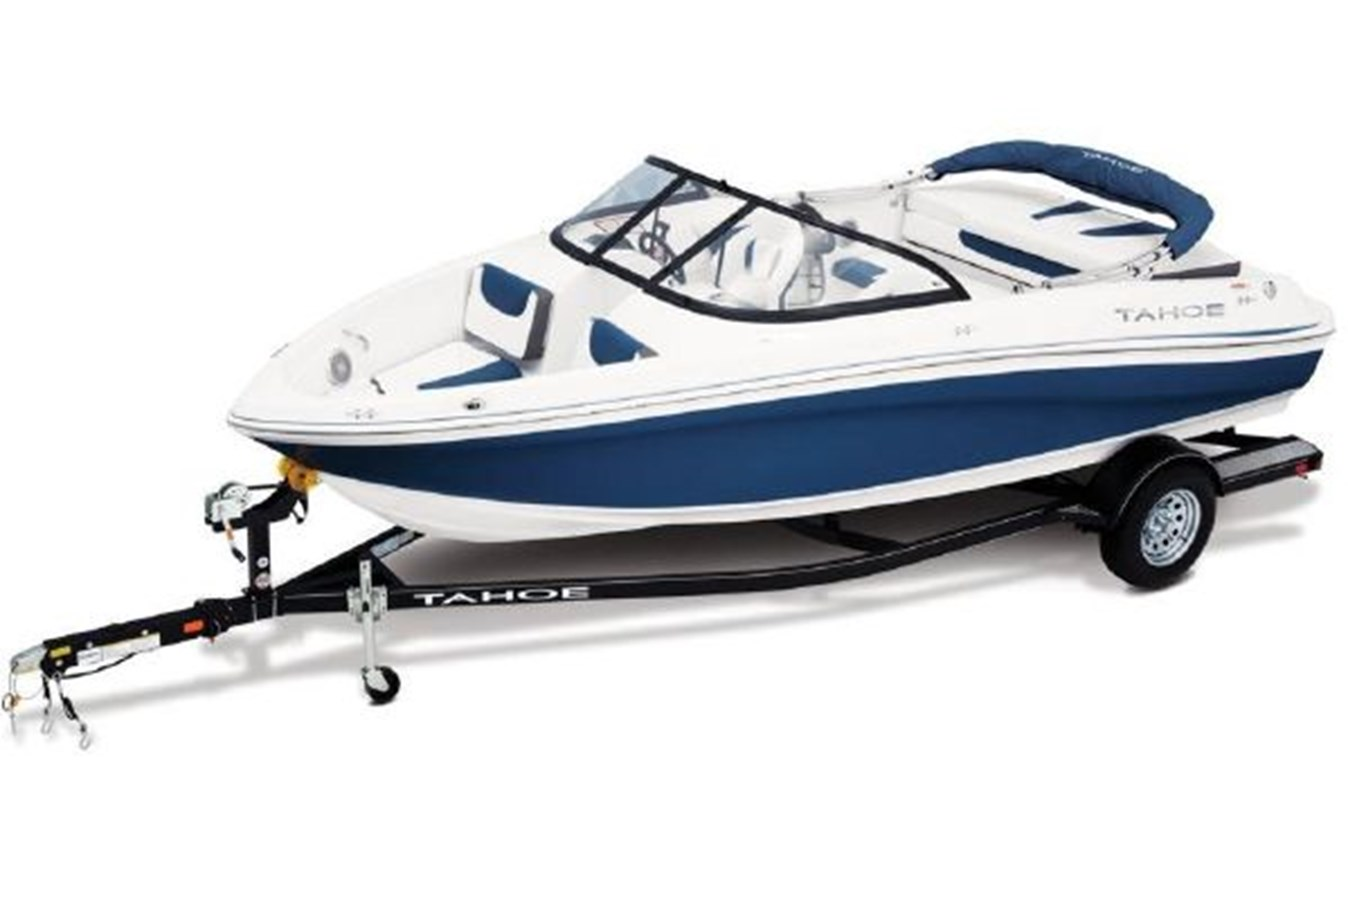 40 2018 Tahoe 500 TS Runabout 2751420